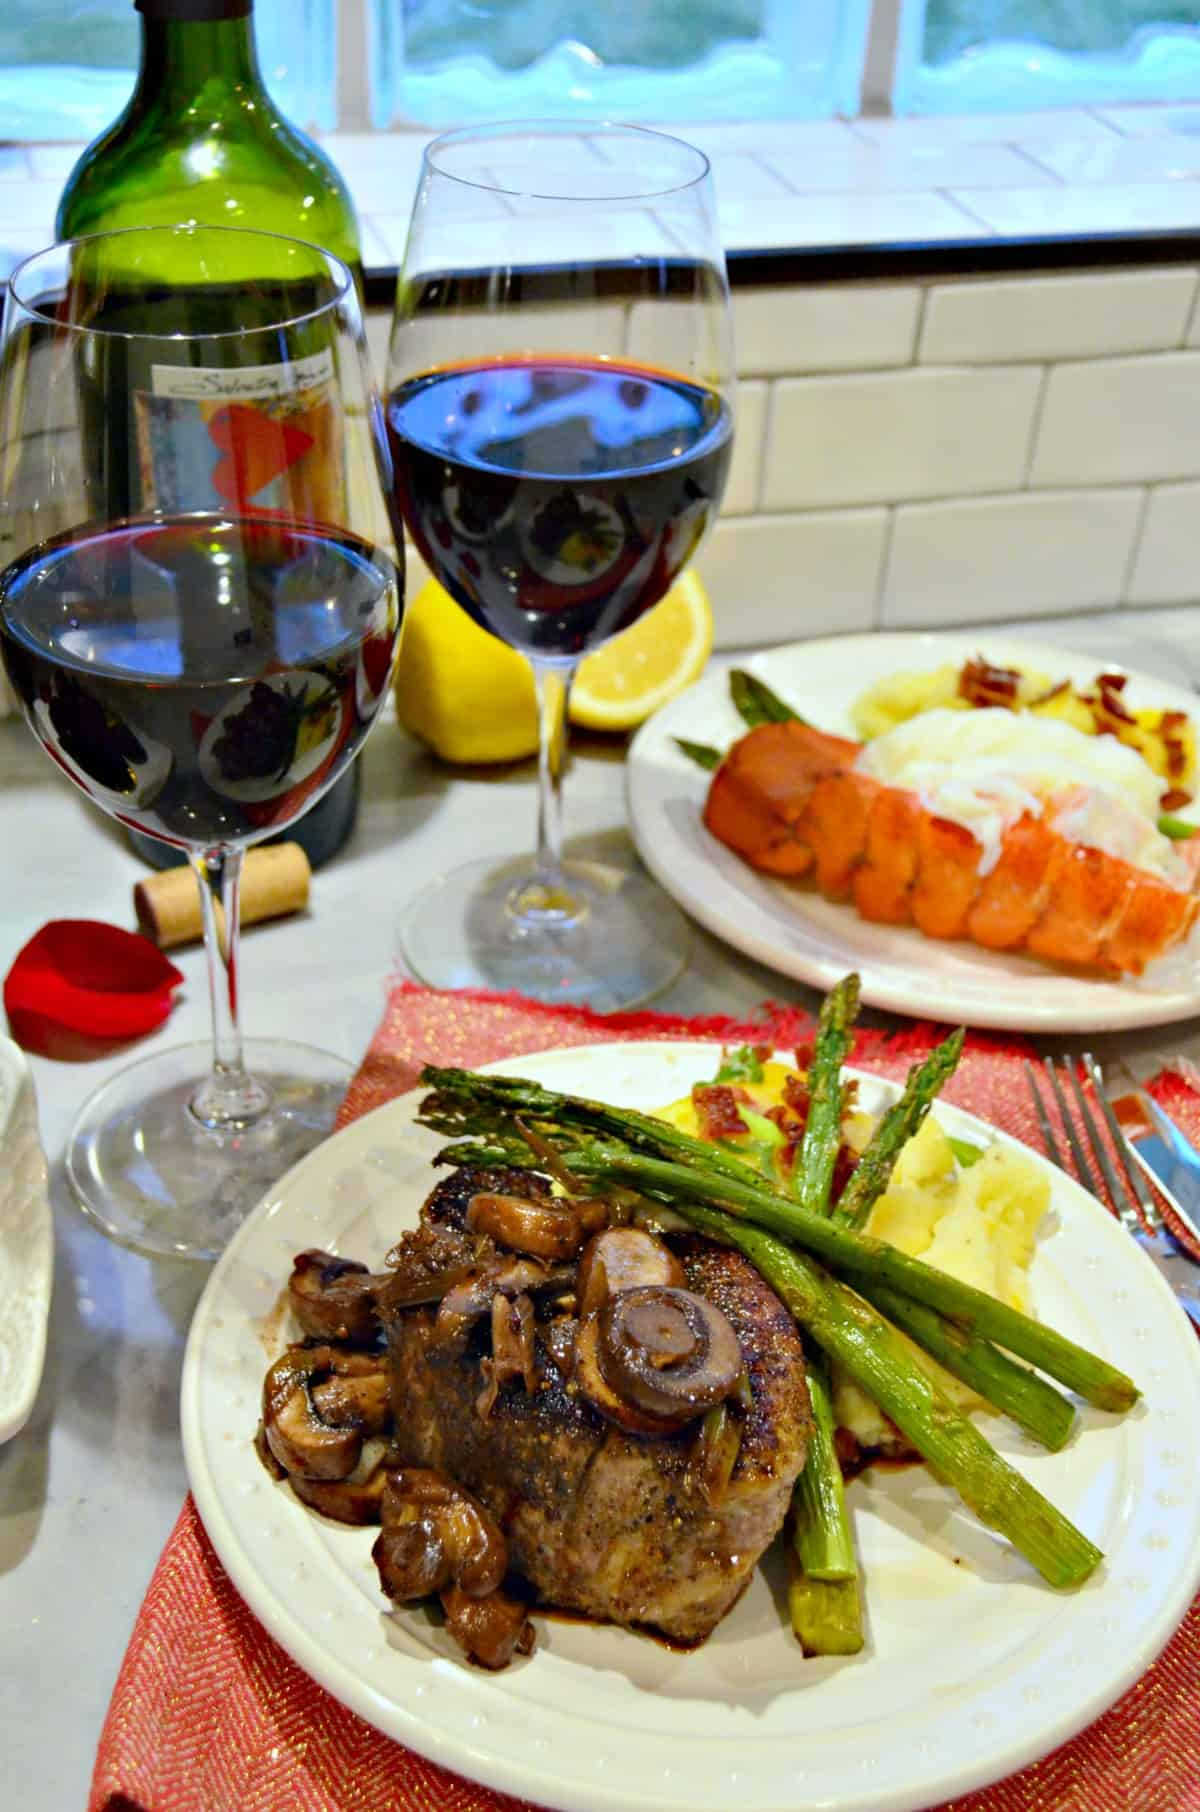 two glasses of wine next to plated chocolate cake, steak, and lobster with asparagus and potatoes.